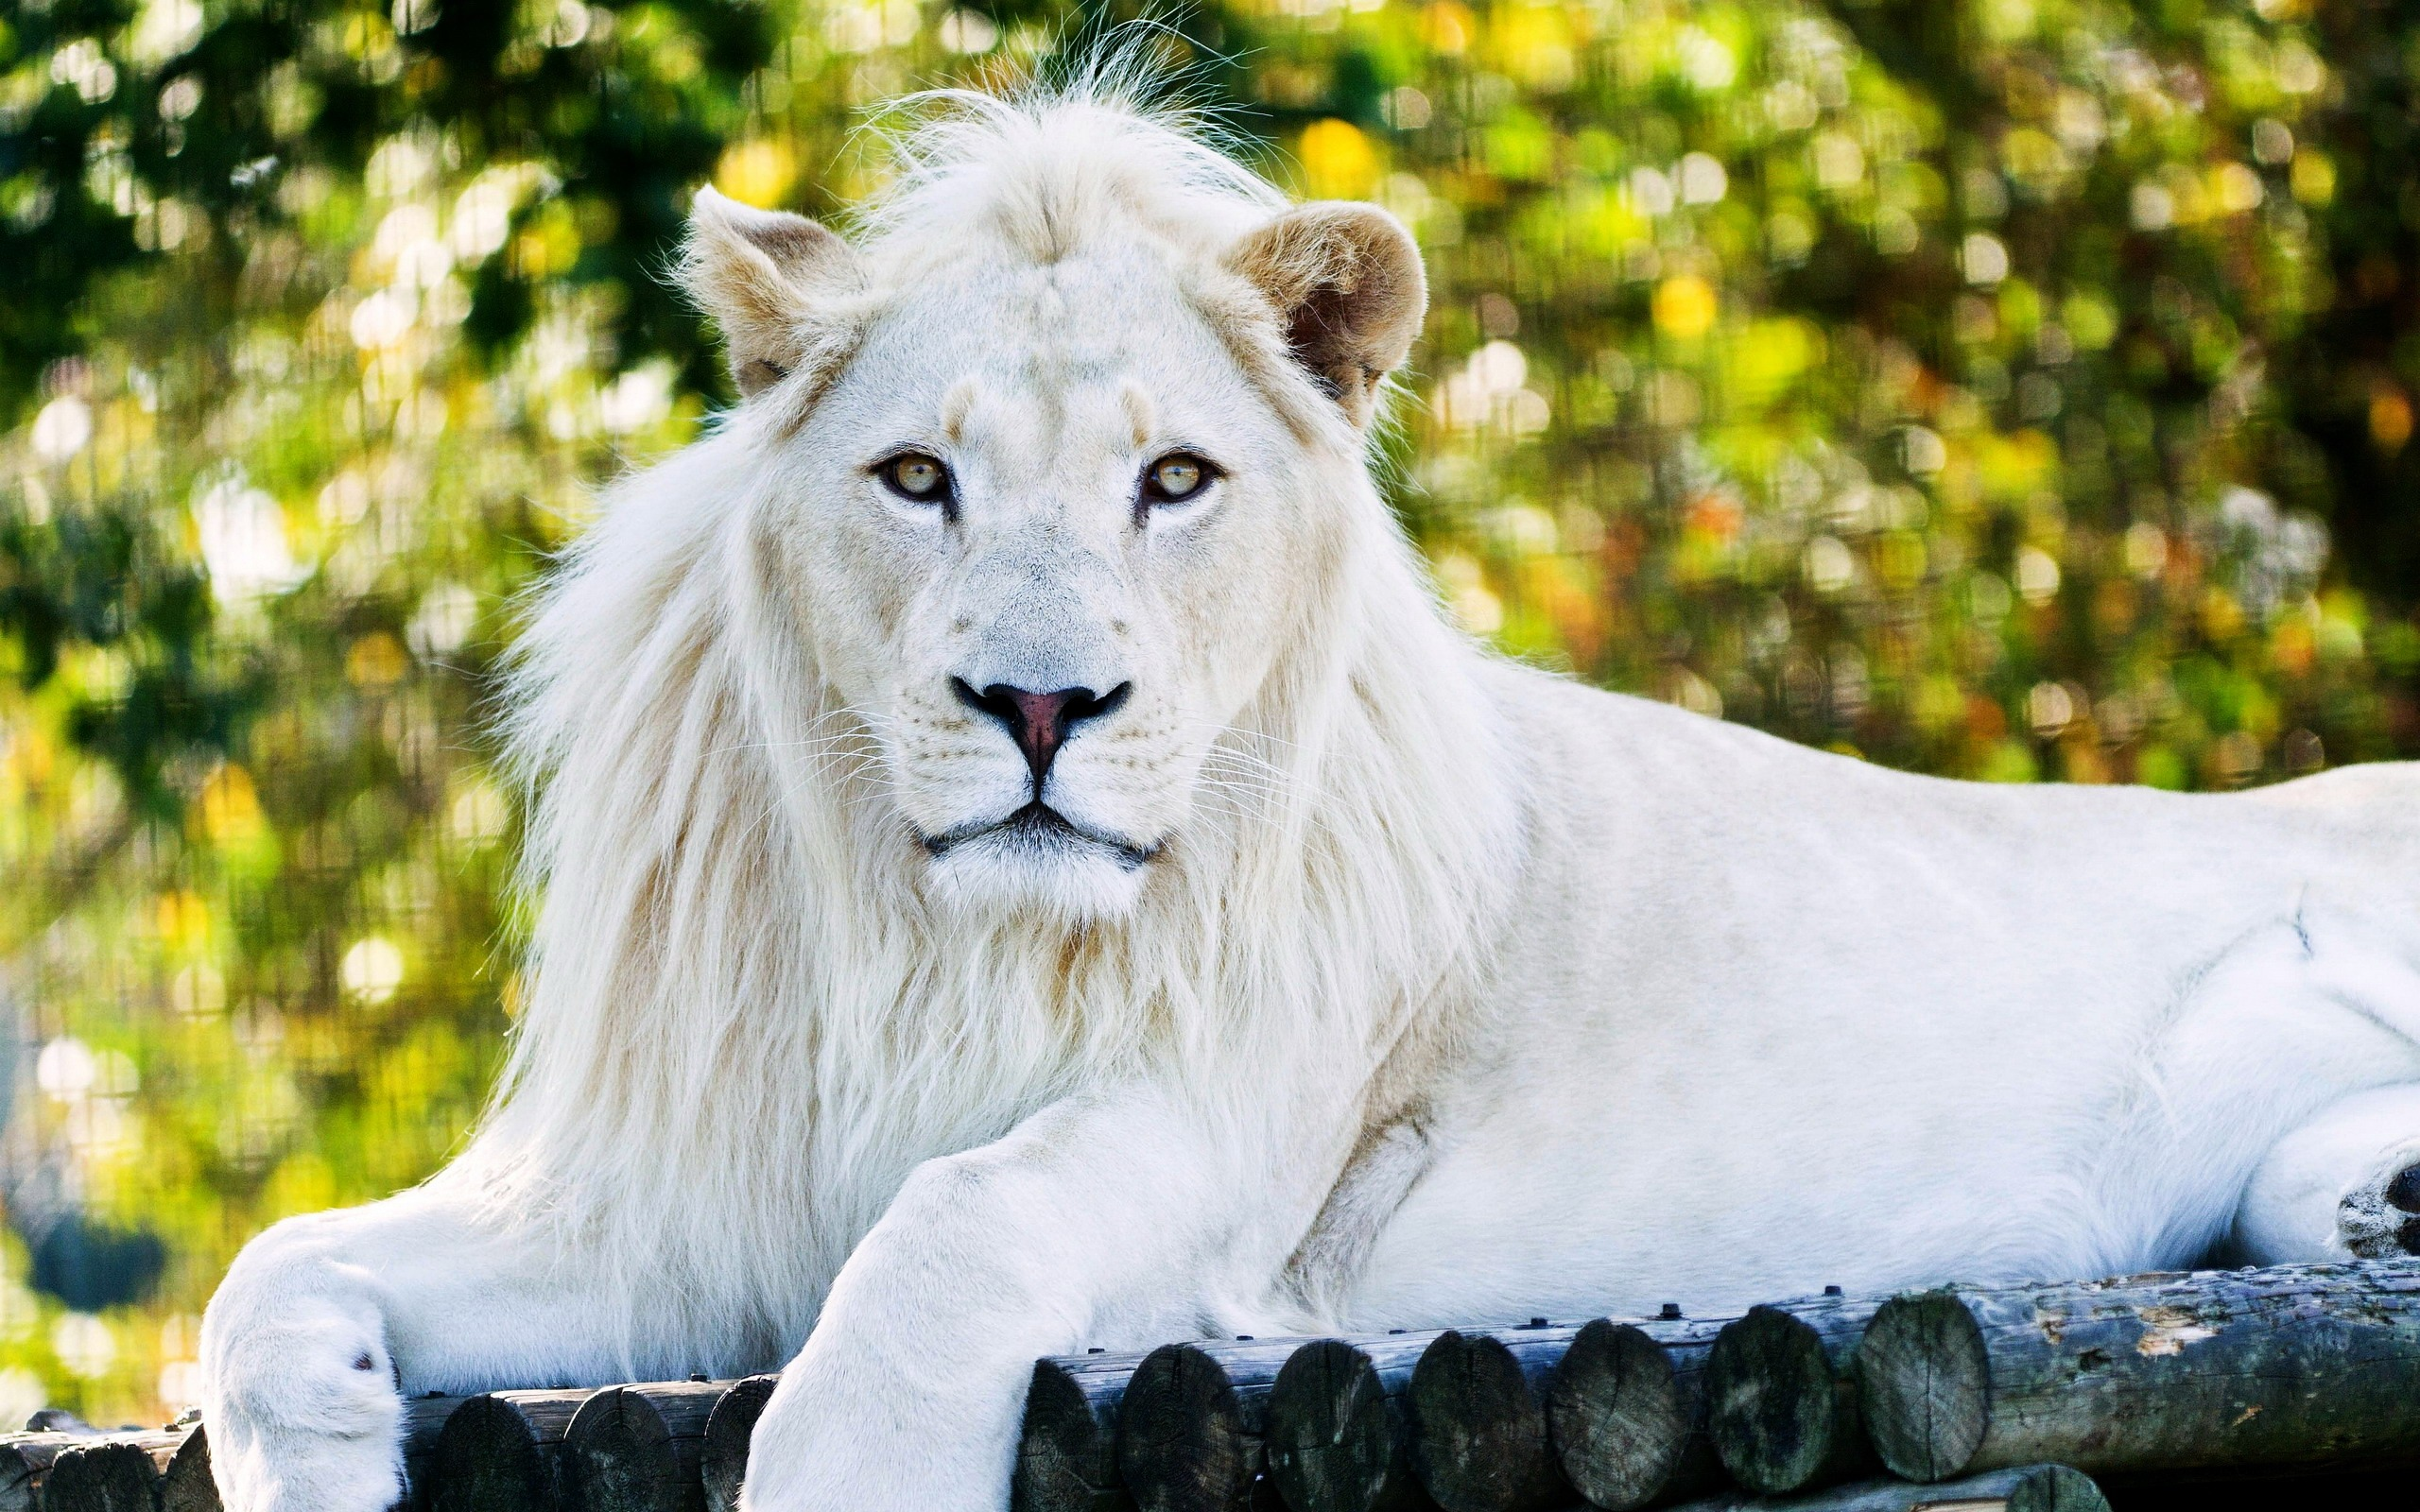 White lion hd animals 4k wallpapers images backgrounds - Lion 4k wallpaper for mobile ...